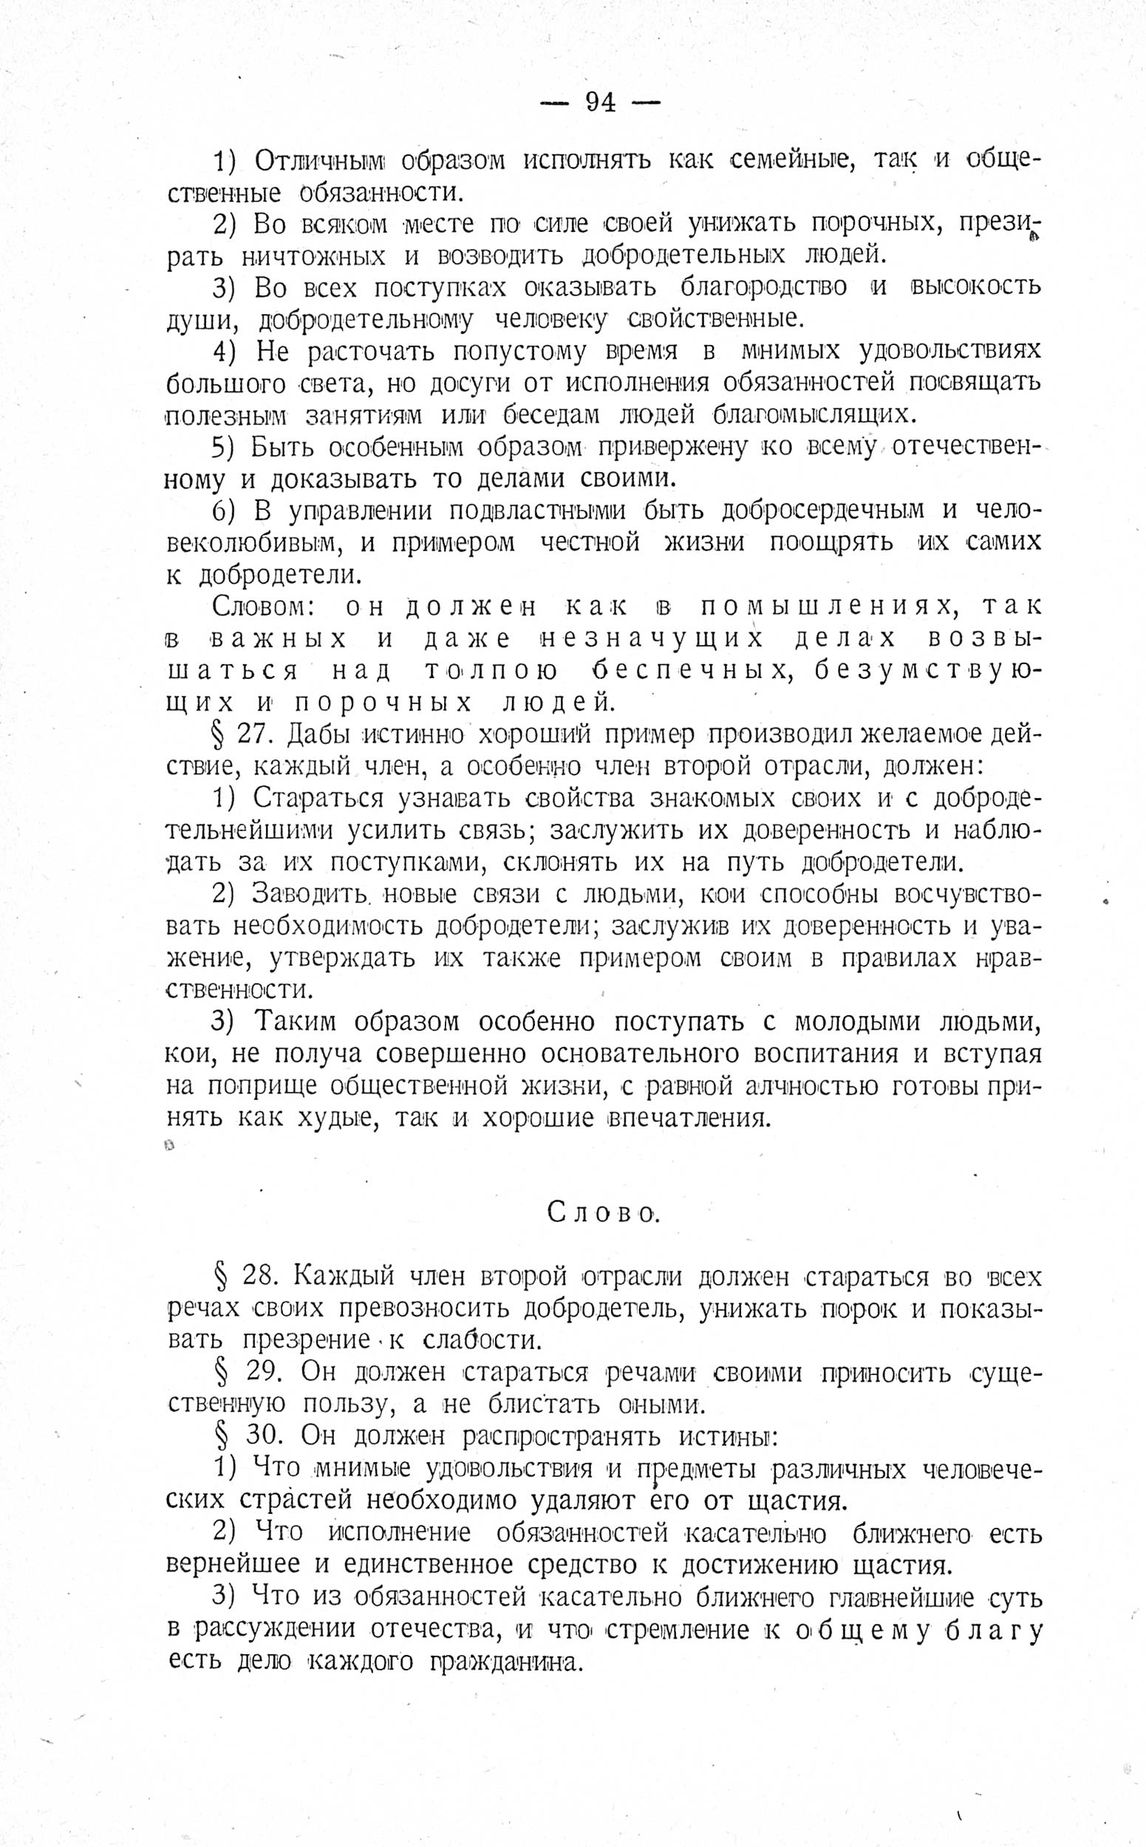 http://elib.shpl.ru/pages/625677/zooms/7